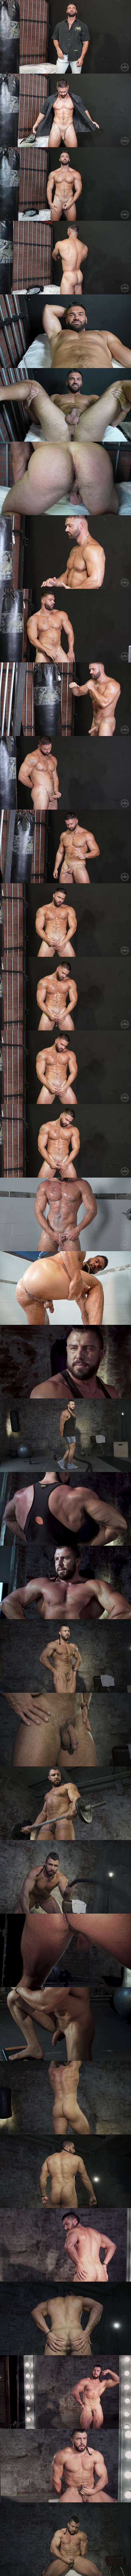 Theguysite - Hot newcomers, sexy beared muscle hunk Riko and macho Russian bodybuilder Ruslan pose their naked muscular bodies before they shoot their white jizz 02